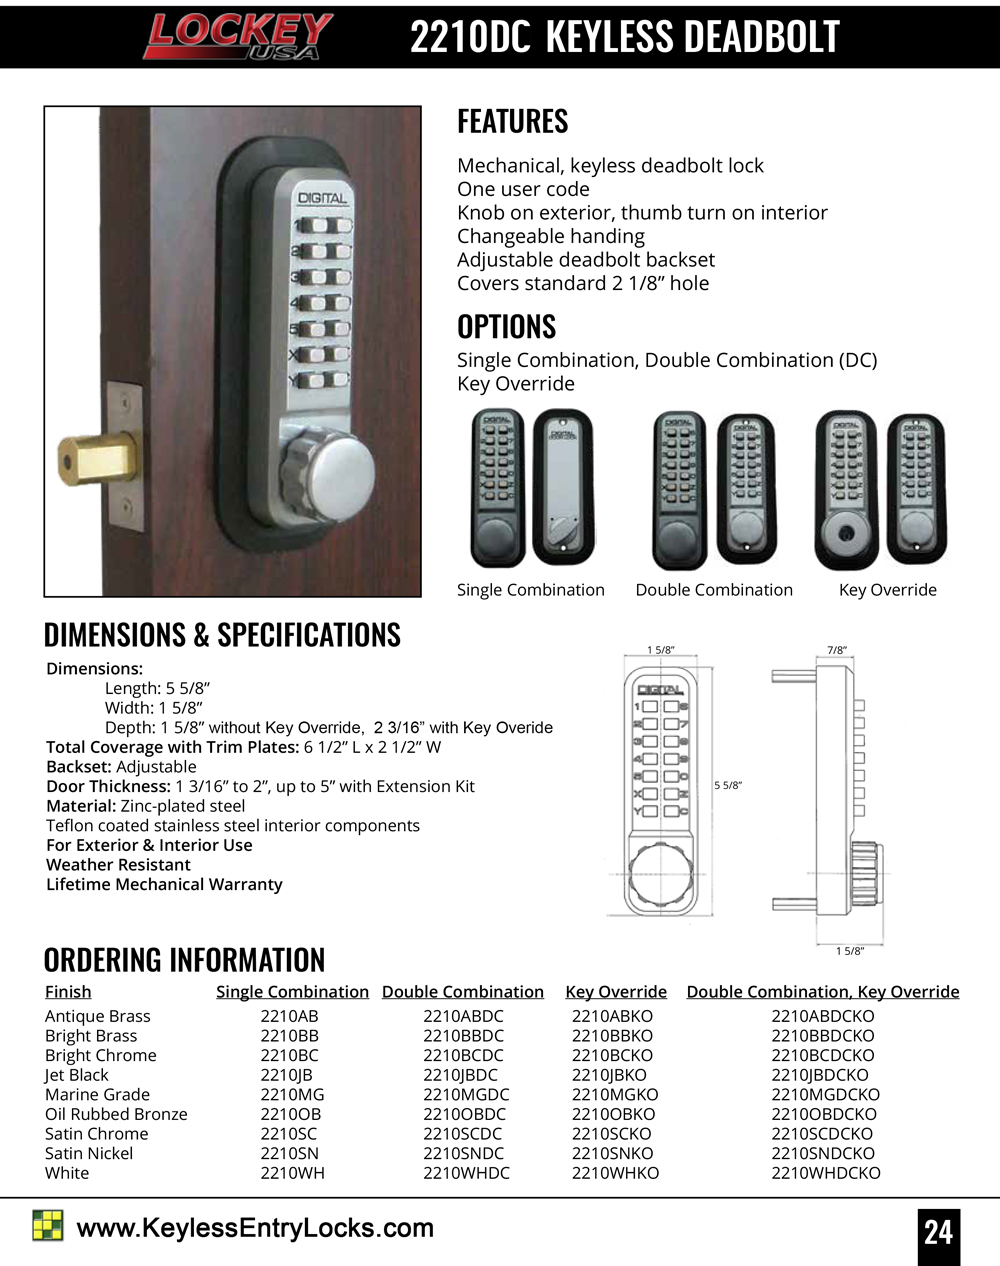 Lockey 2210DC Deadbolt Keypad Lock